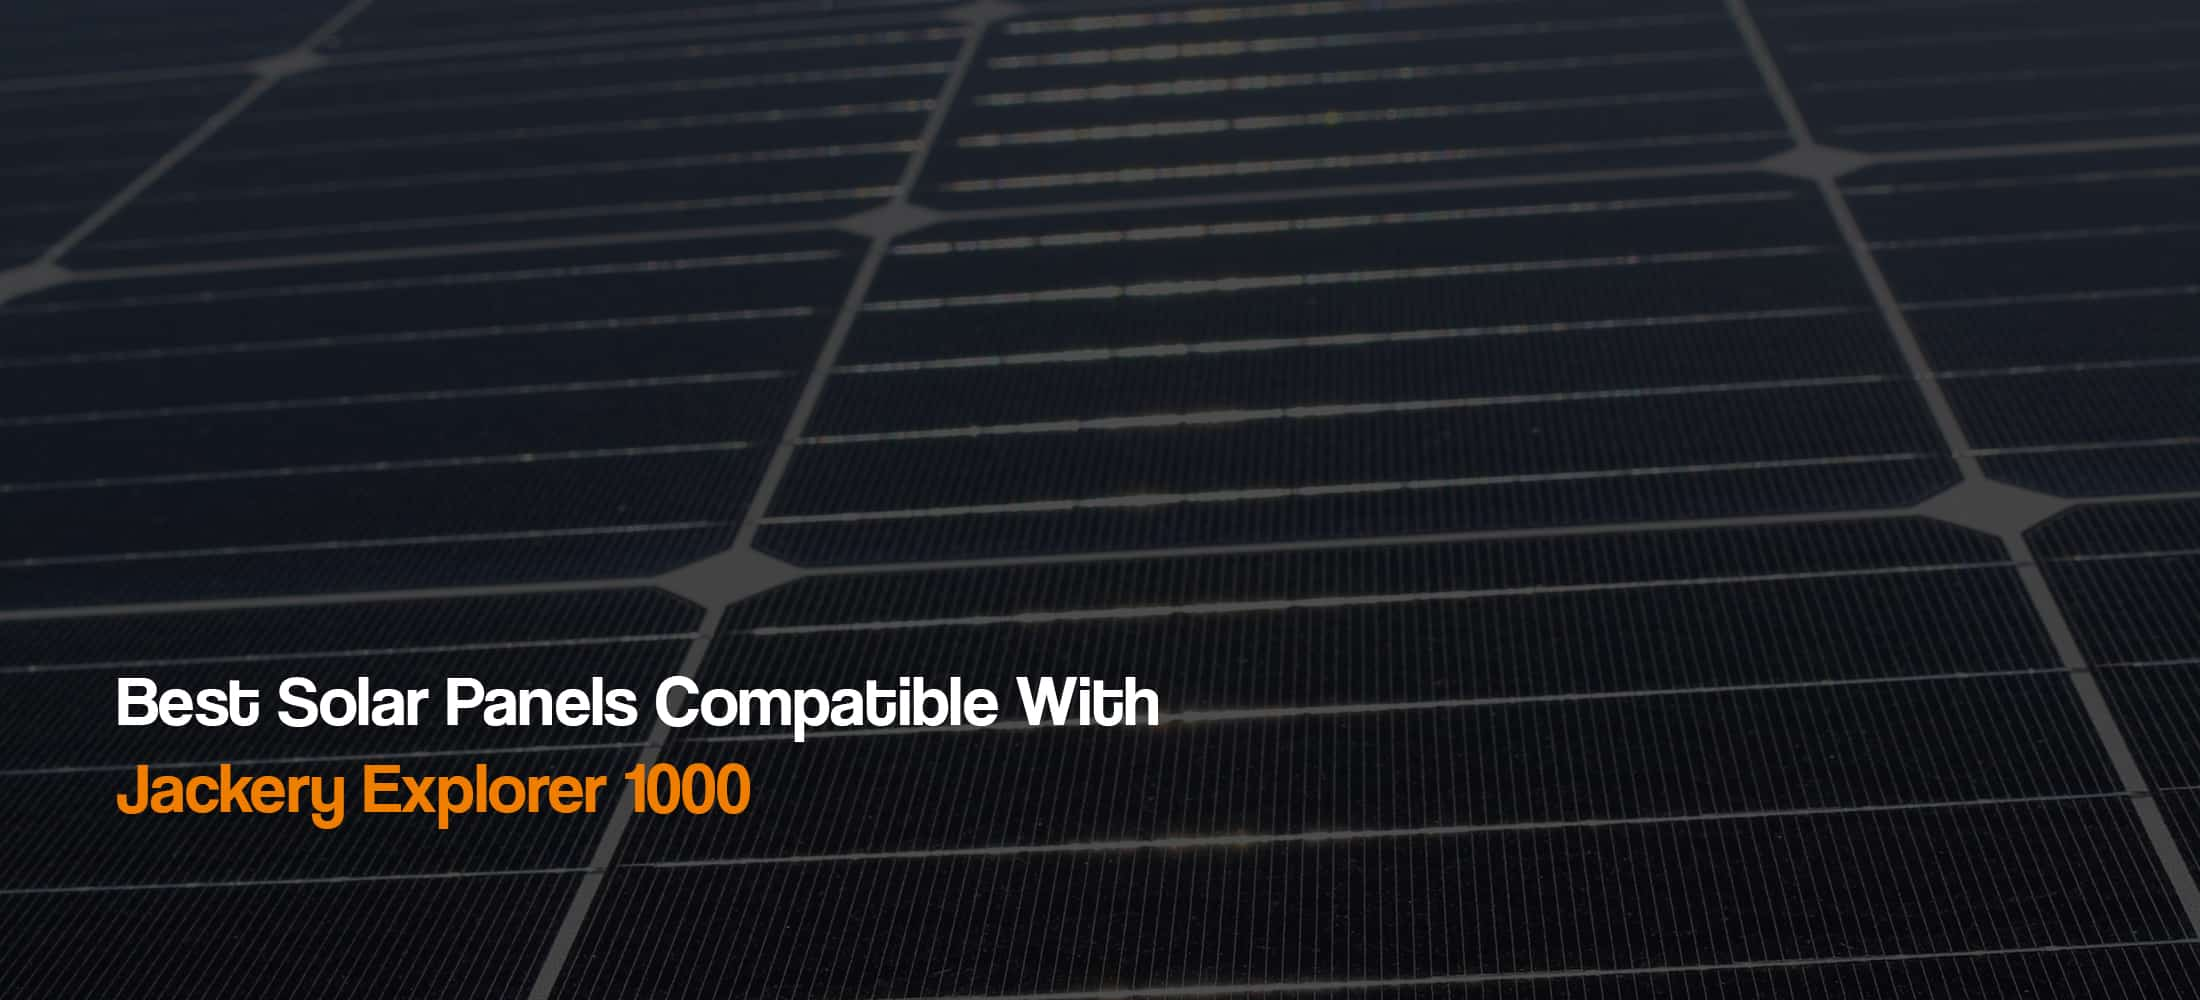 best-solar-panels-for-compatible-jackery-explorer-1000-power-station-solar-generator-the-solar-addict